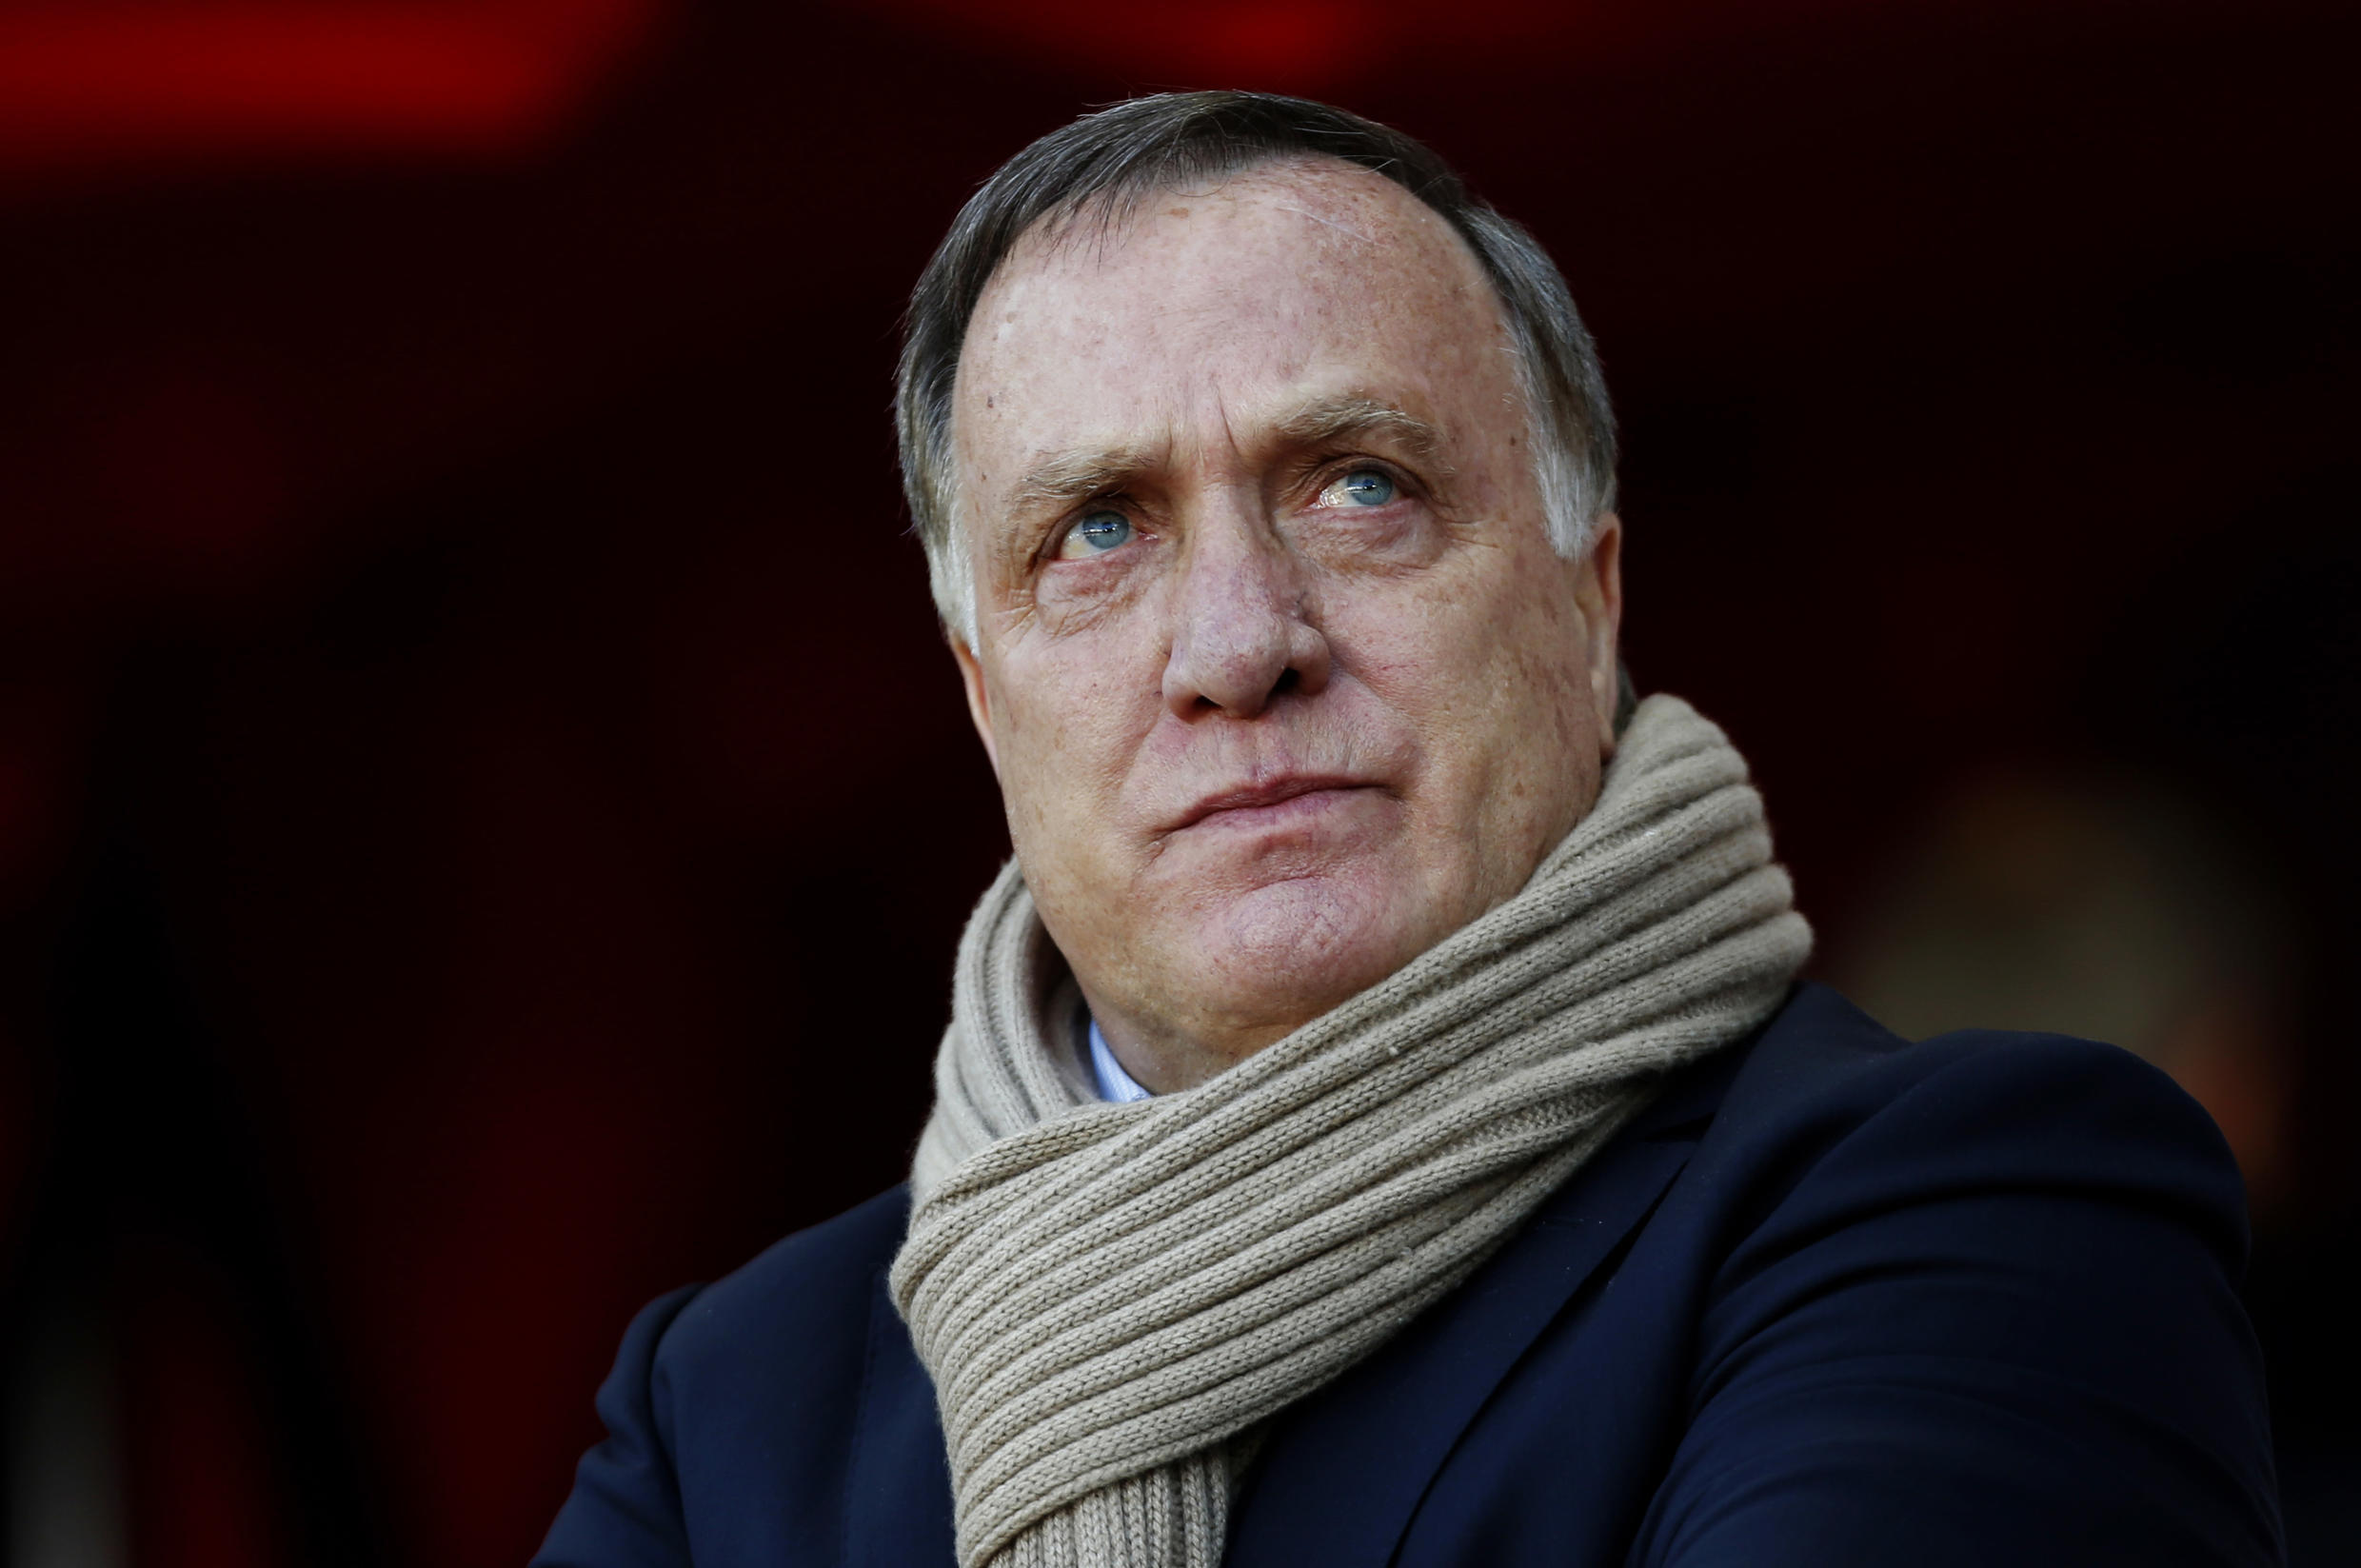 Dick Advocaat leads his struggling Sunderland side against a Southampton team chasing a spot in next season's Europa League